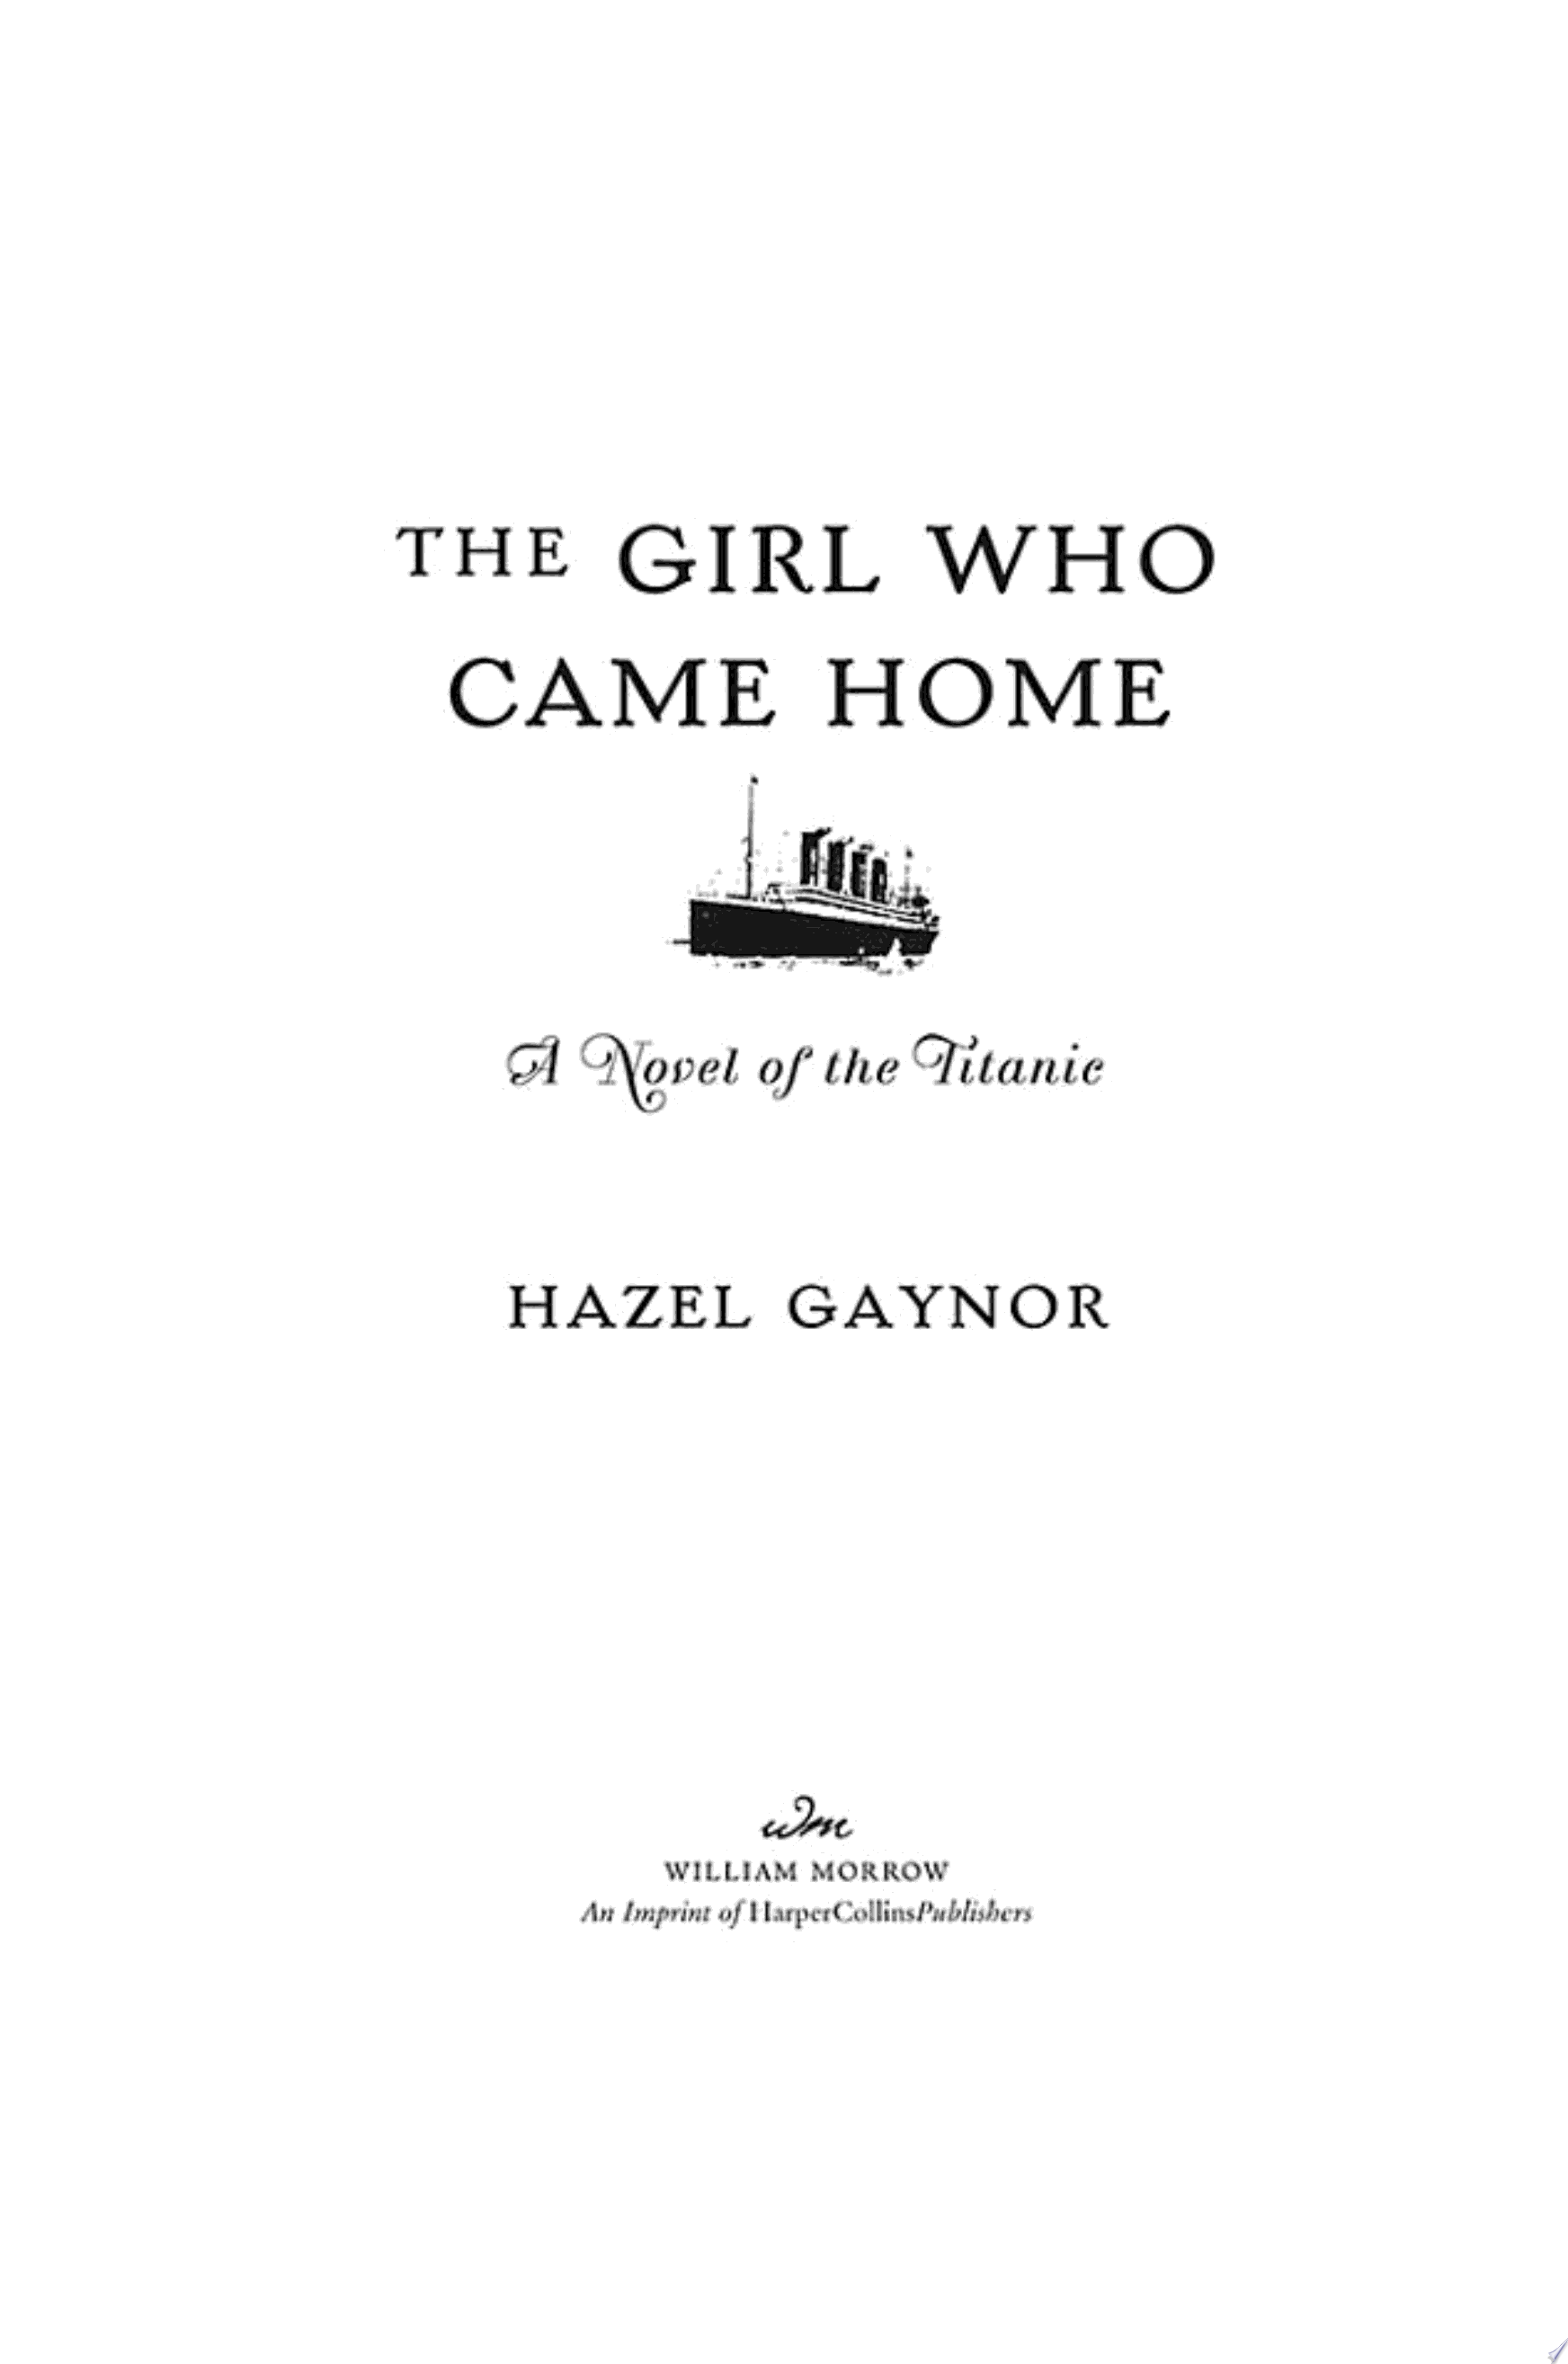 The Girl Who Came Home